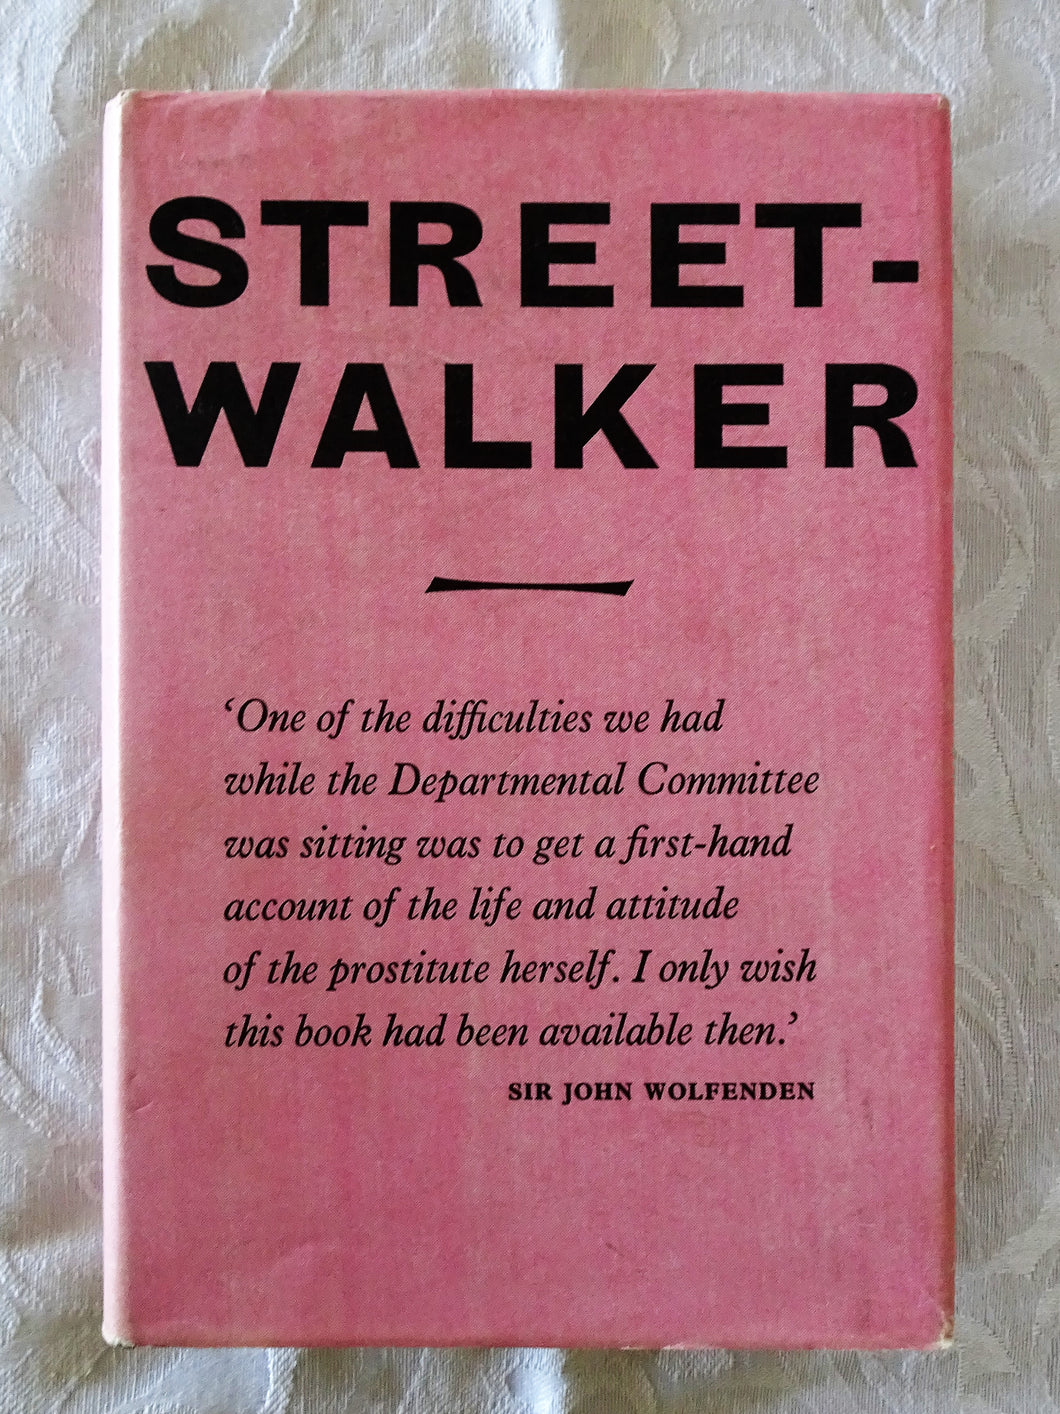 Streetwalker (author anonymous)